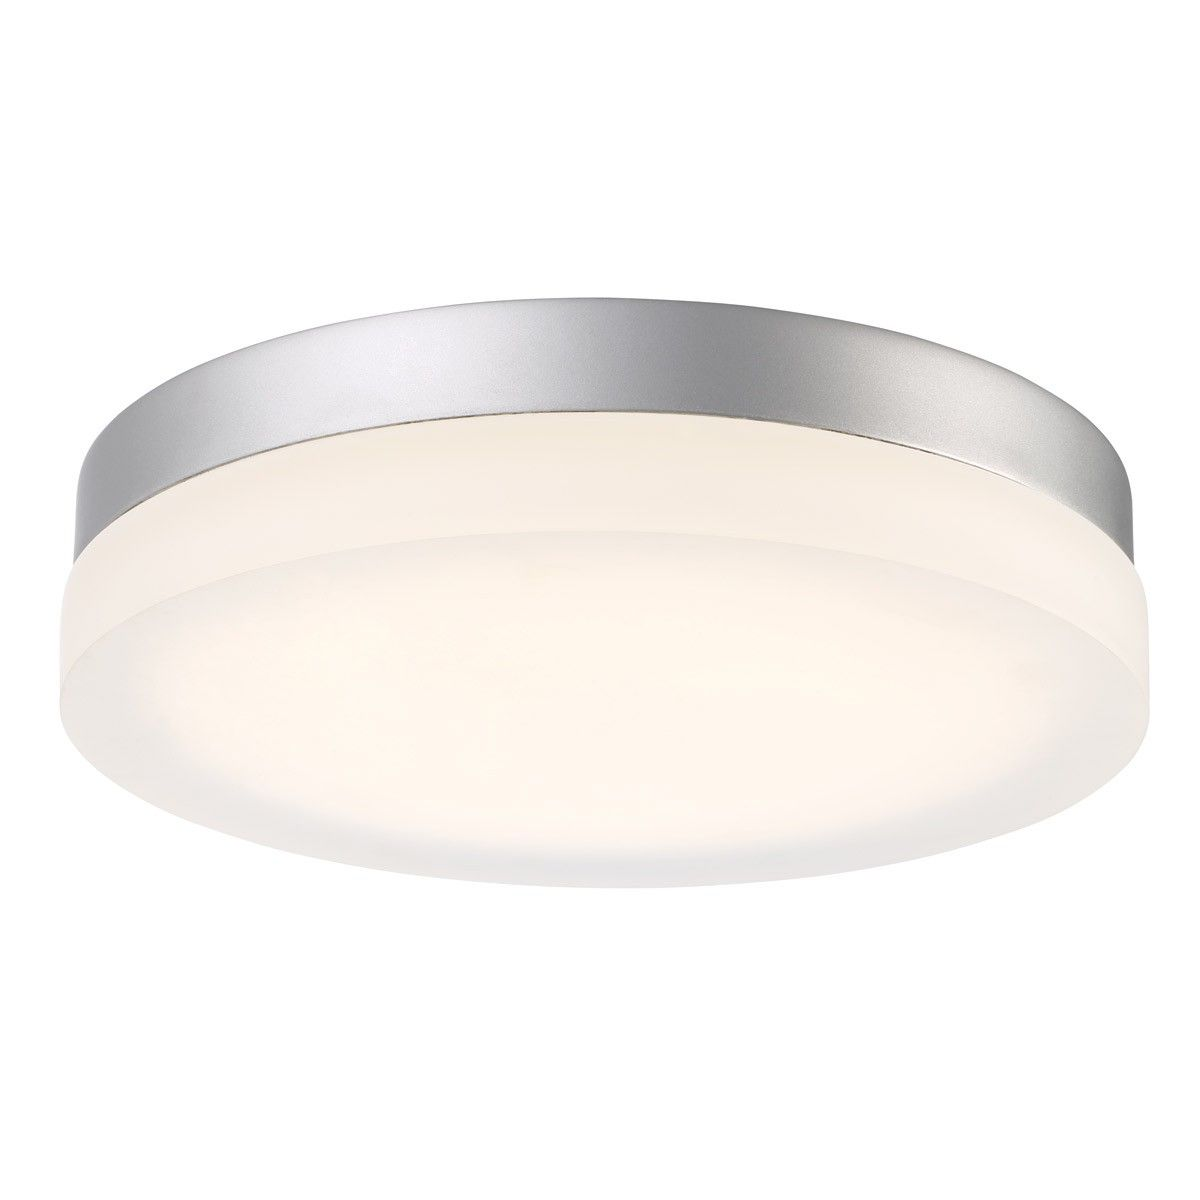 Circa 15 Inch LED Ceiling Light surface mount ceiling lights